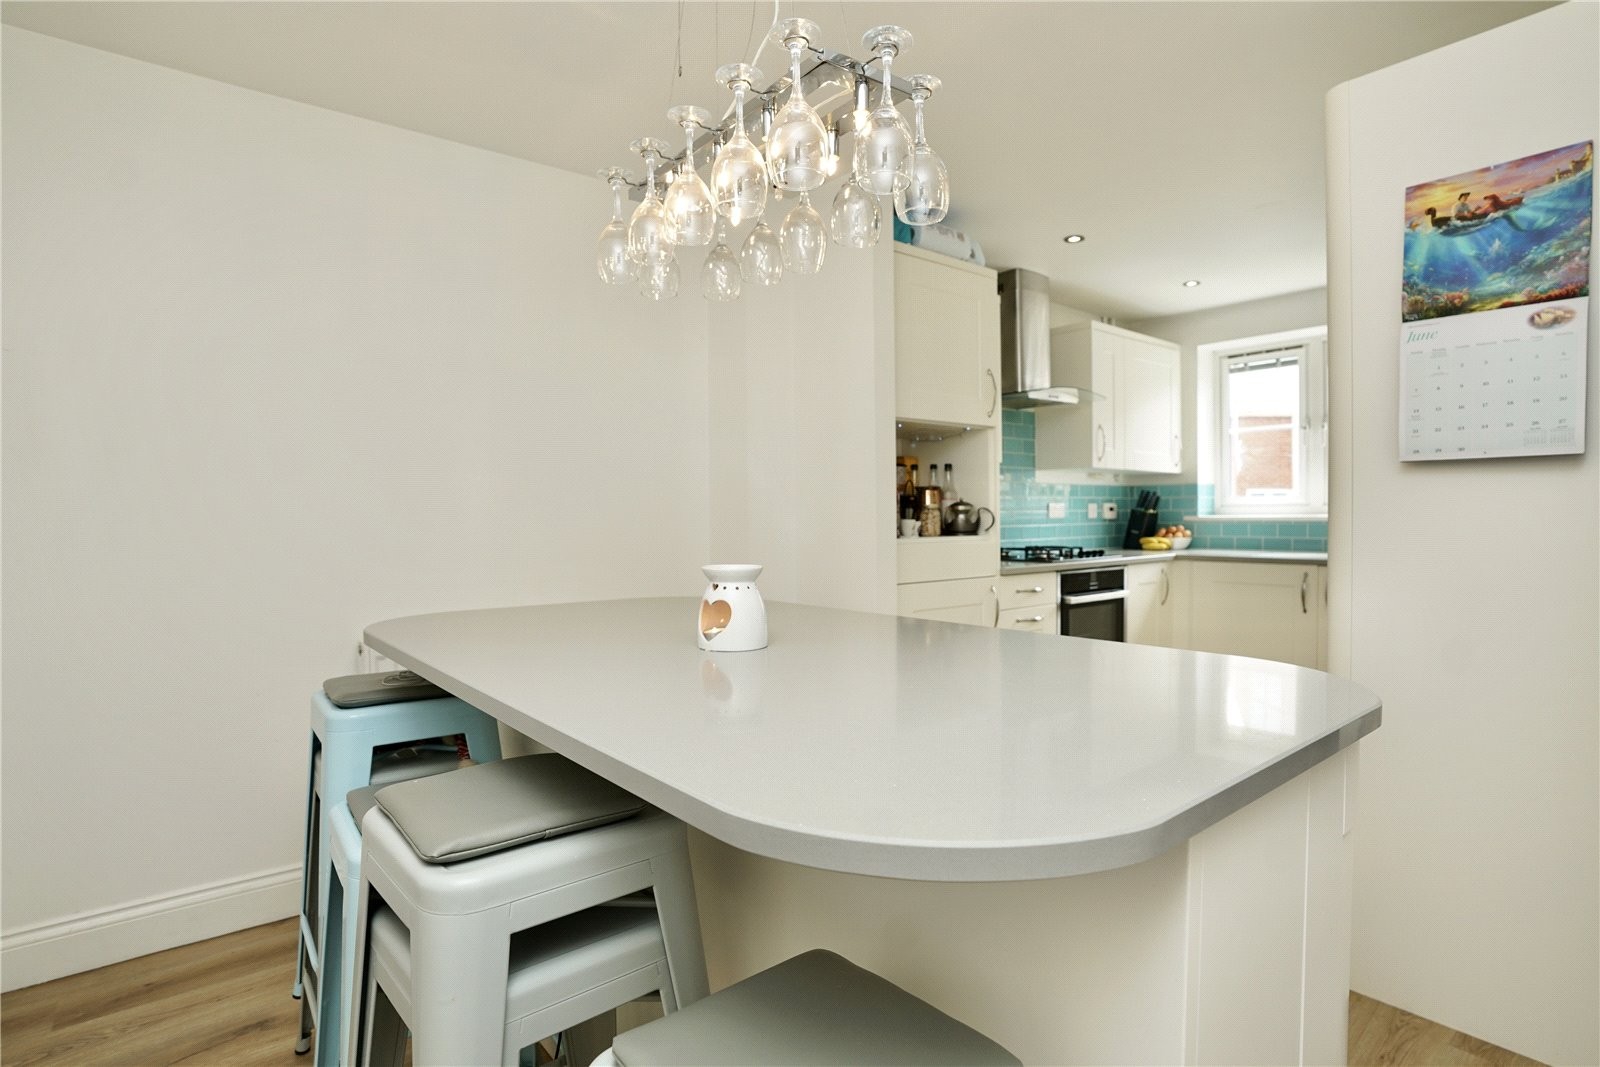 3 bed house for sale in St. Neots, PE19 6DL - Property Image 1